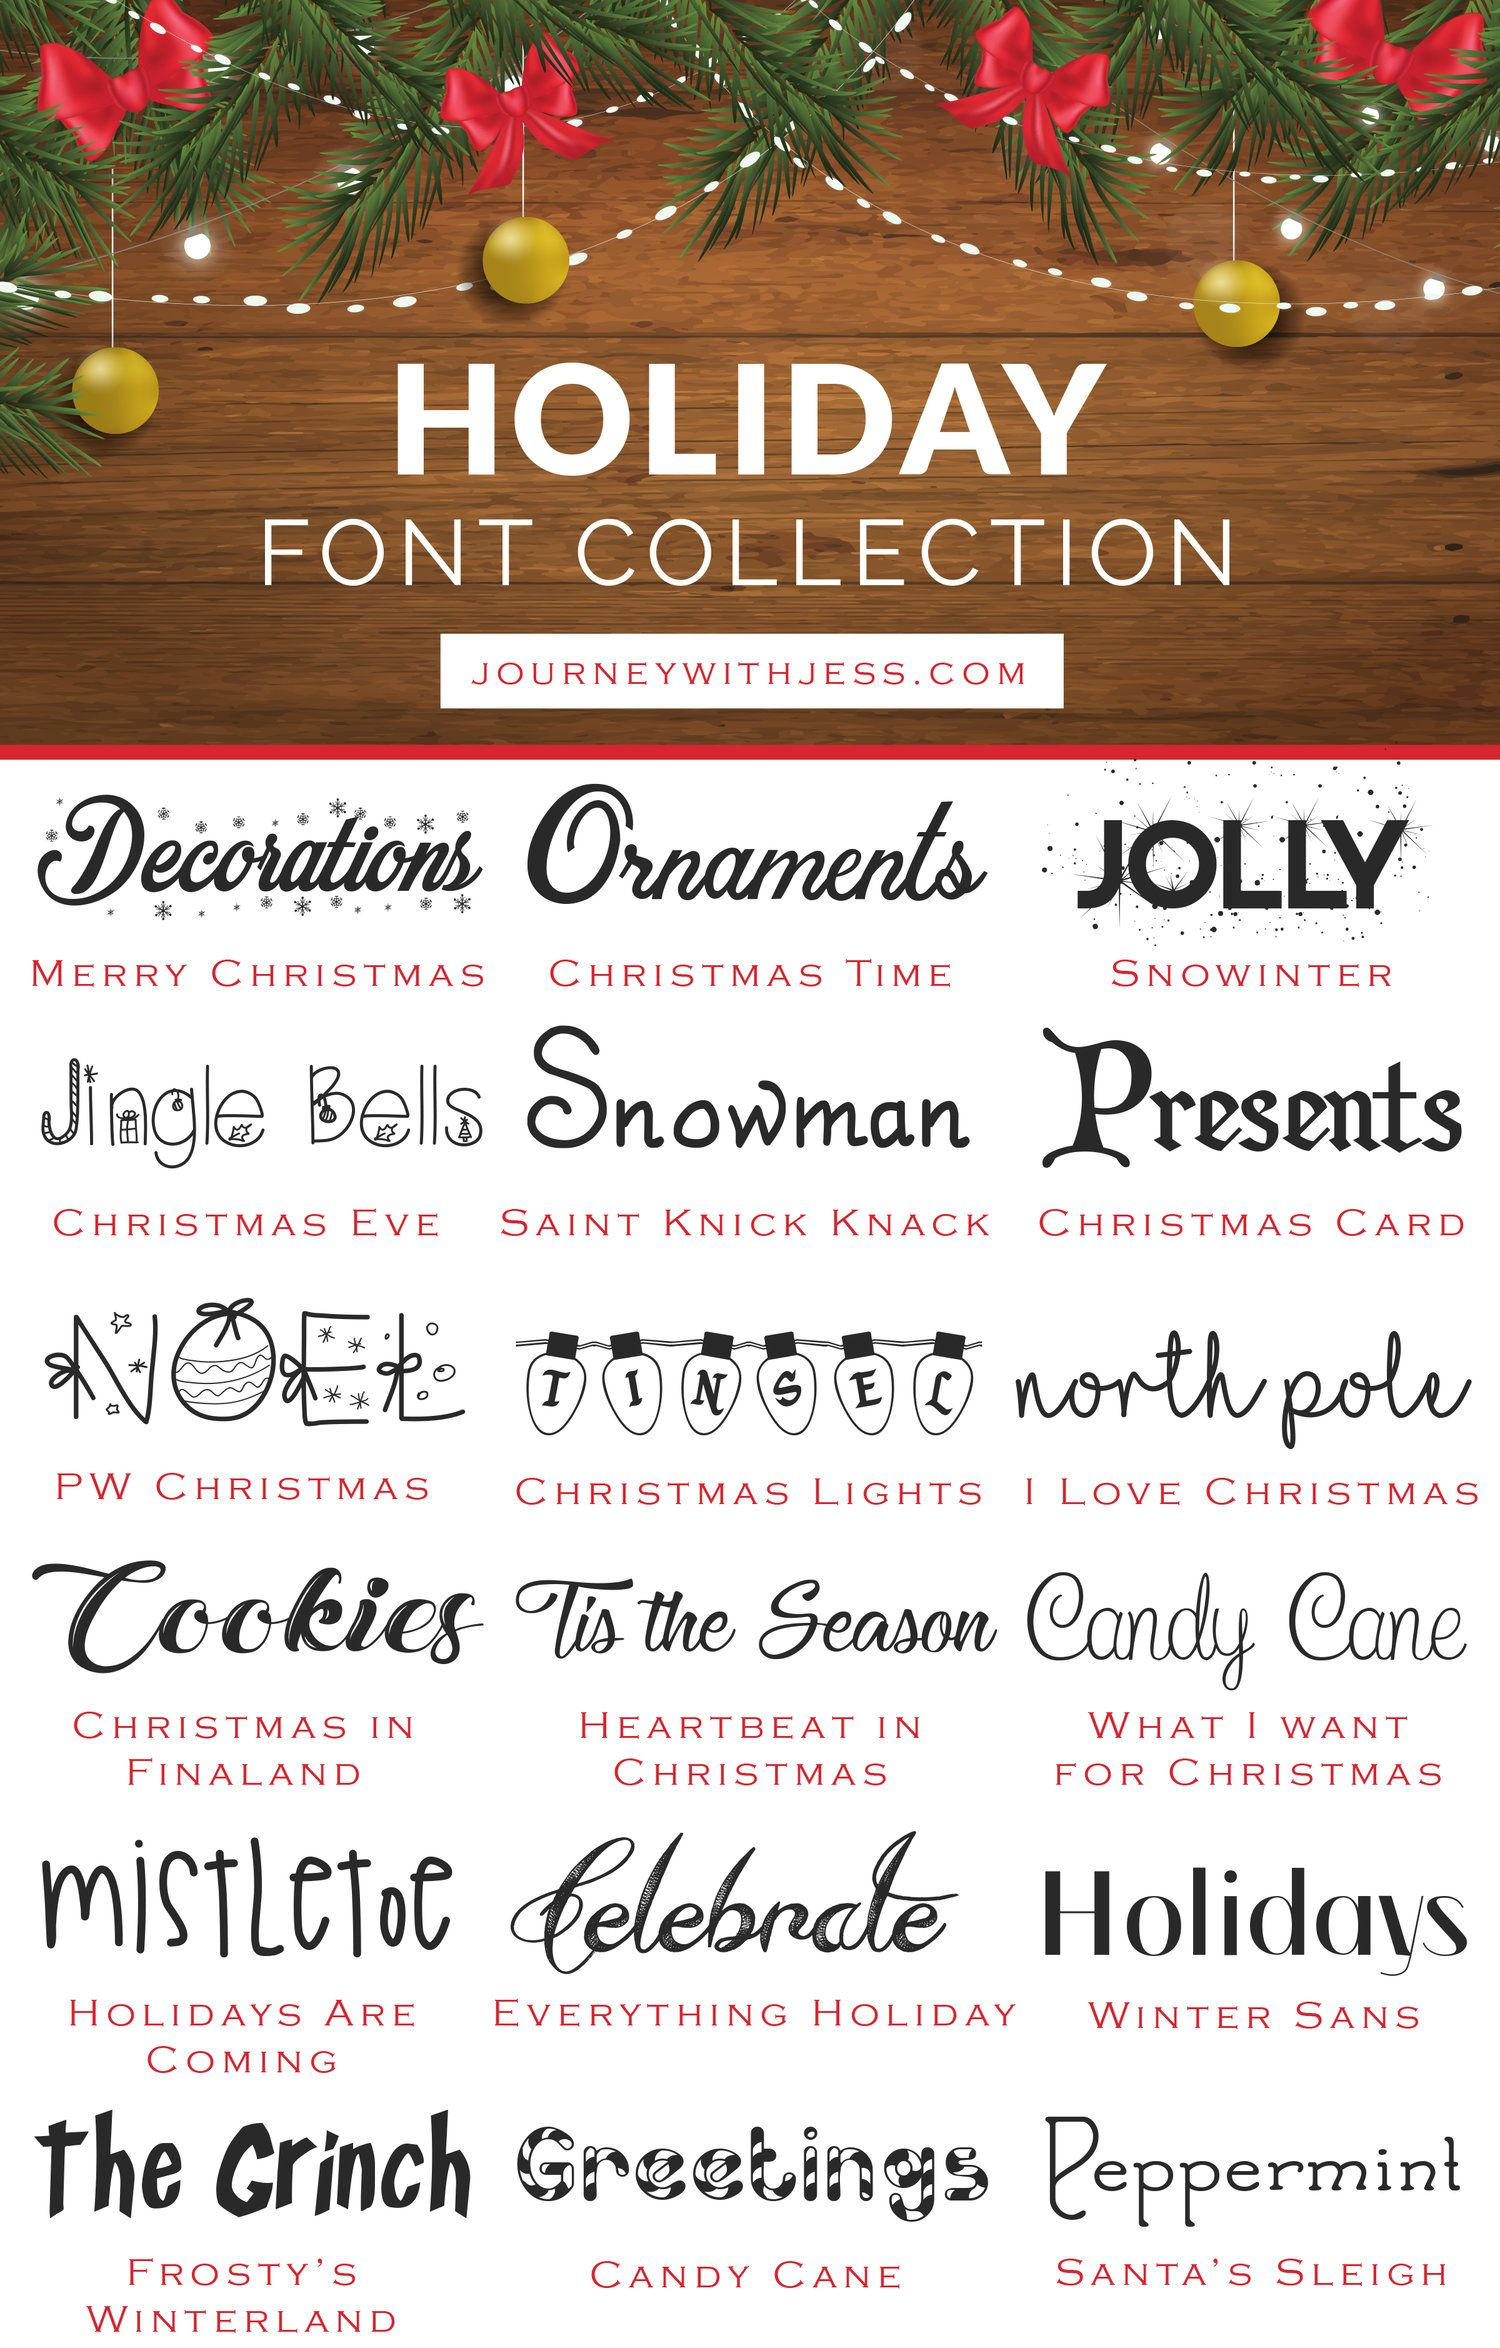 Free Font Collection Holiday Fonts Journey With Jess Inspiration For Your Creative Side Holiday Fonts Cricut Fonts Christmas Fonts